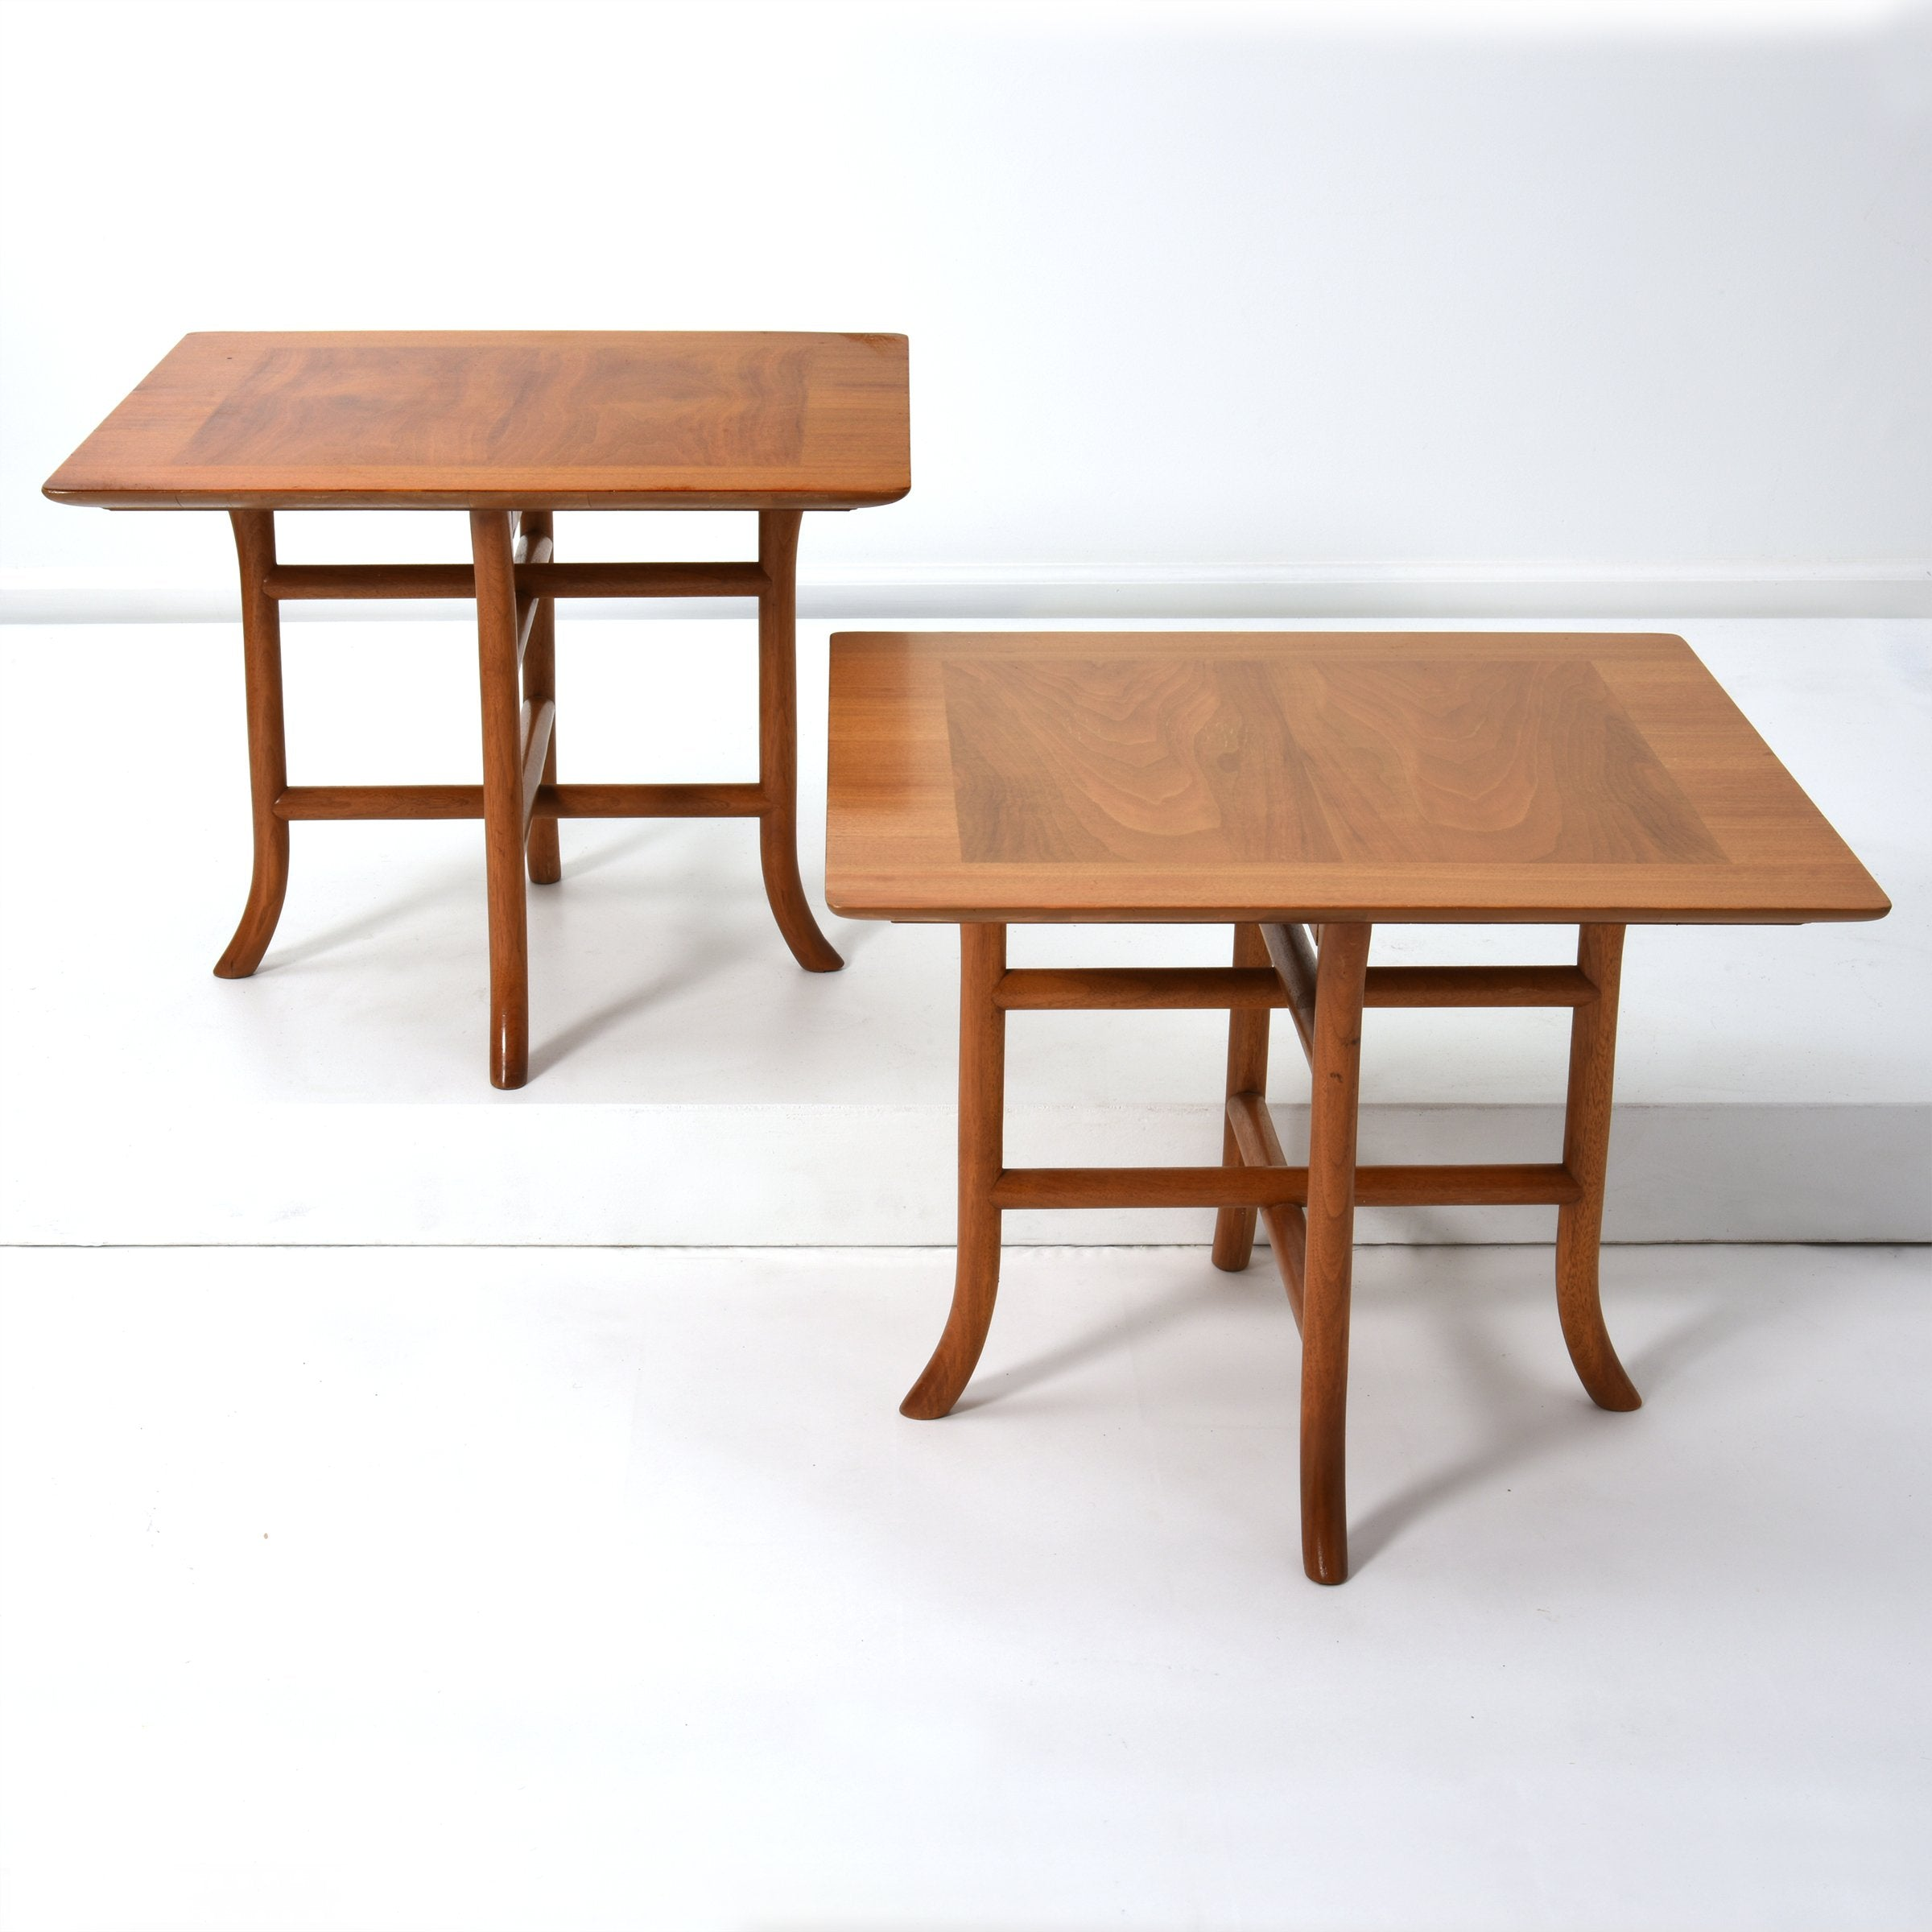 Pair of Occasional Side Tables by Terence Harold Robsjohn Gibbings for Widdicomb 1950s